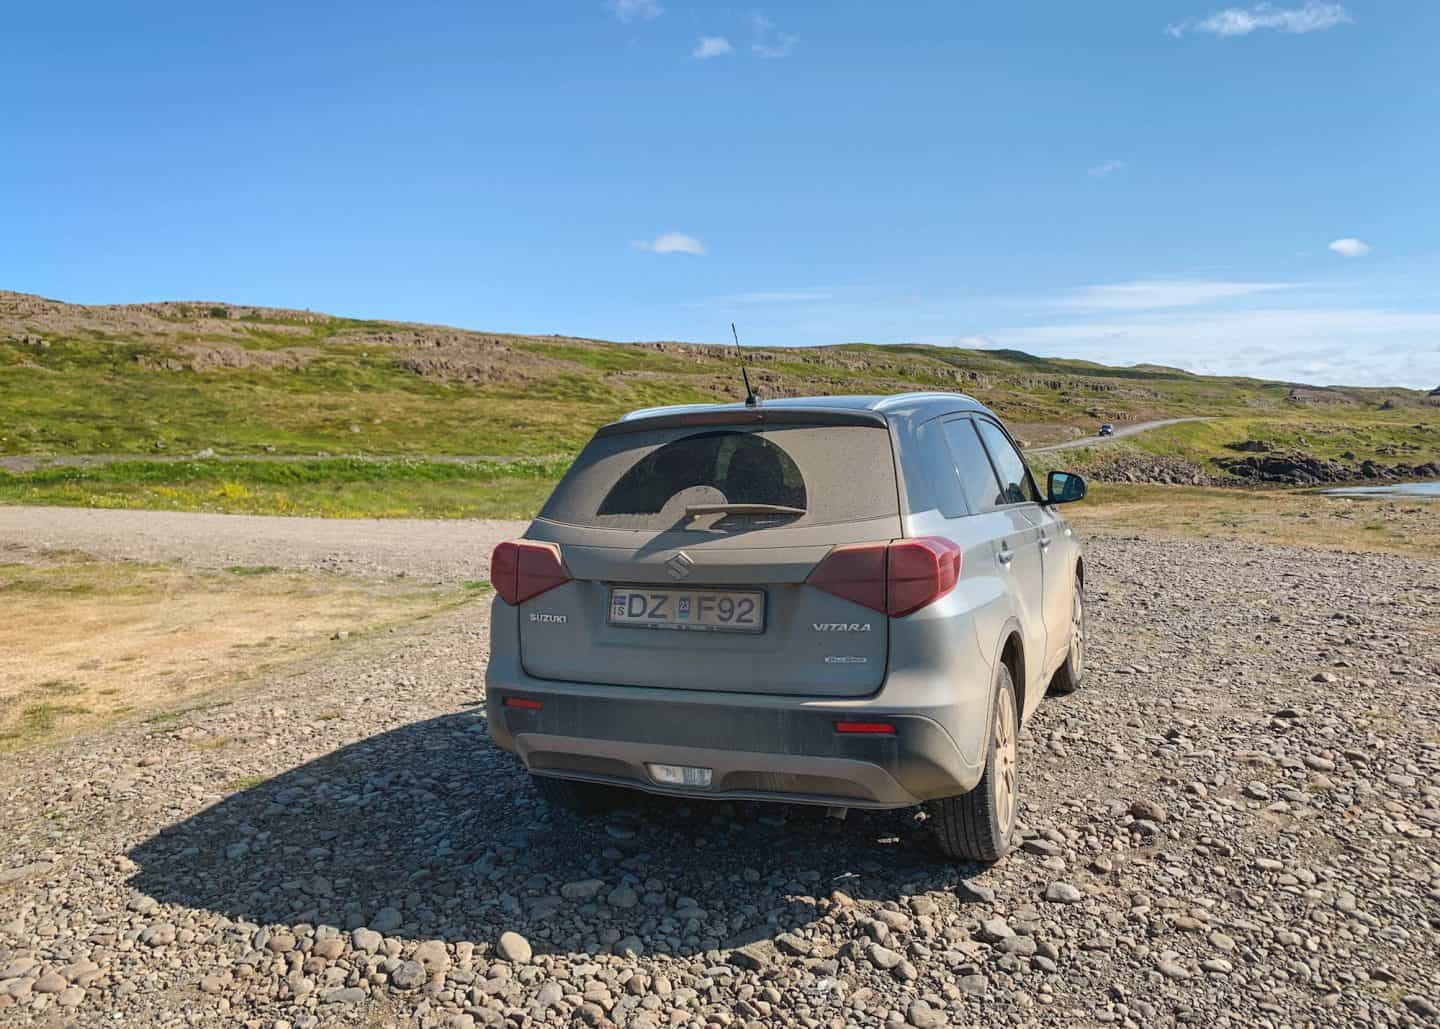 4x4 car rental for driving on Iceland's F roads